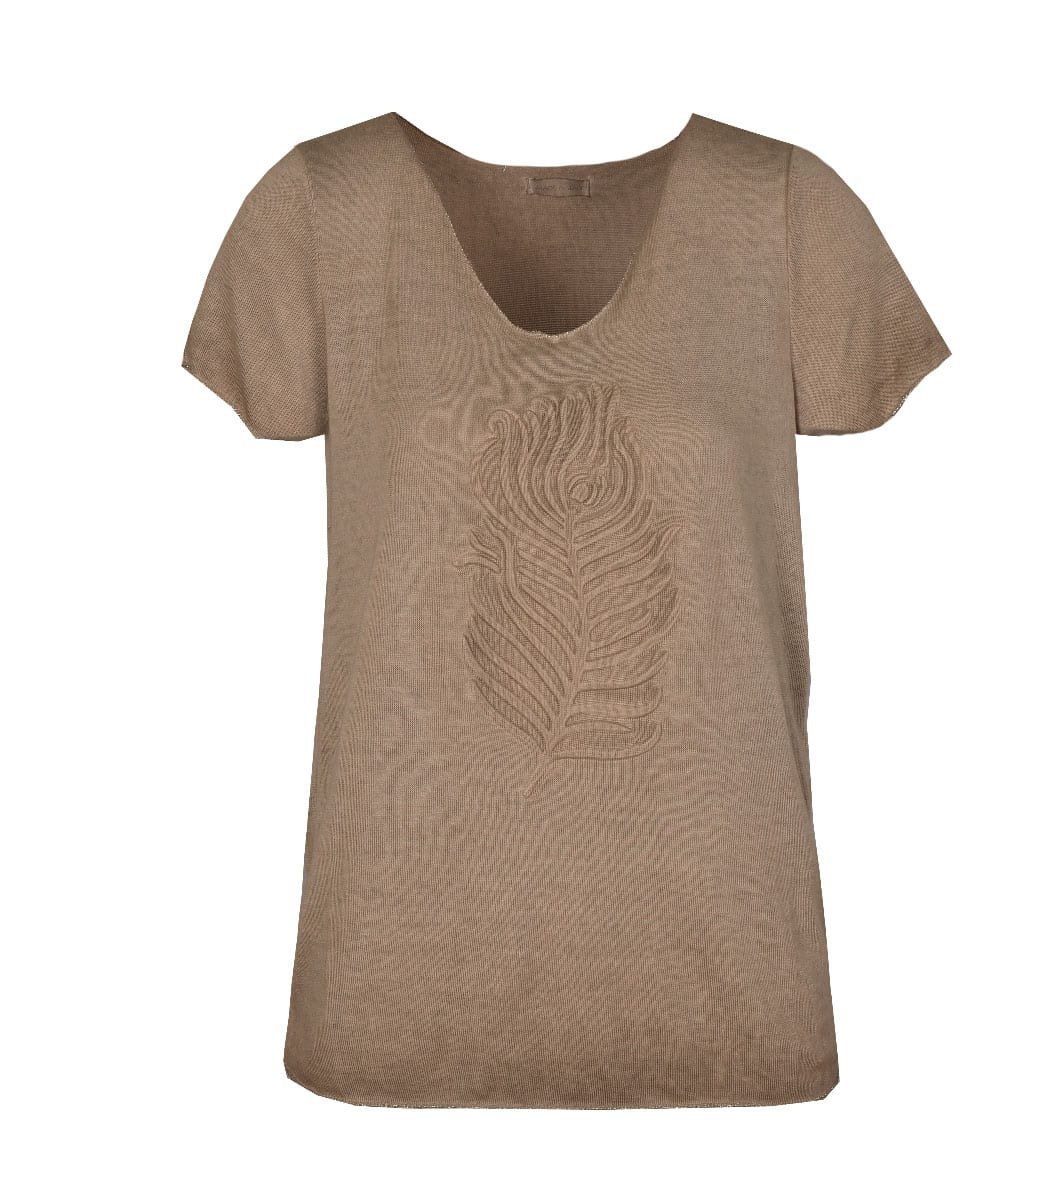 Feather embossed top